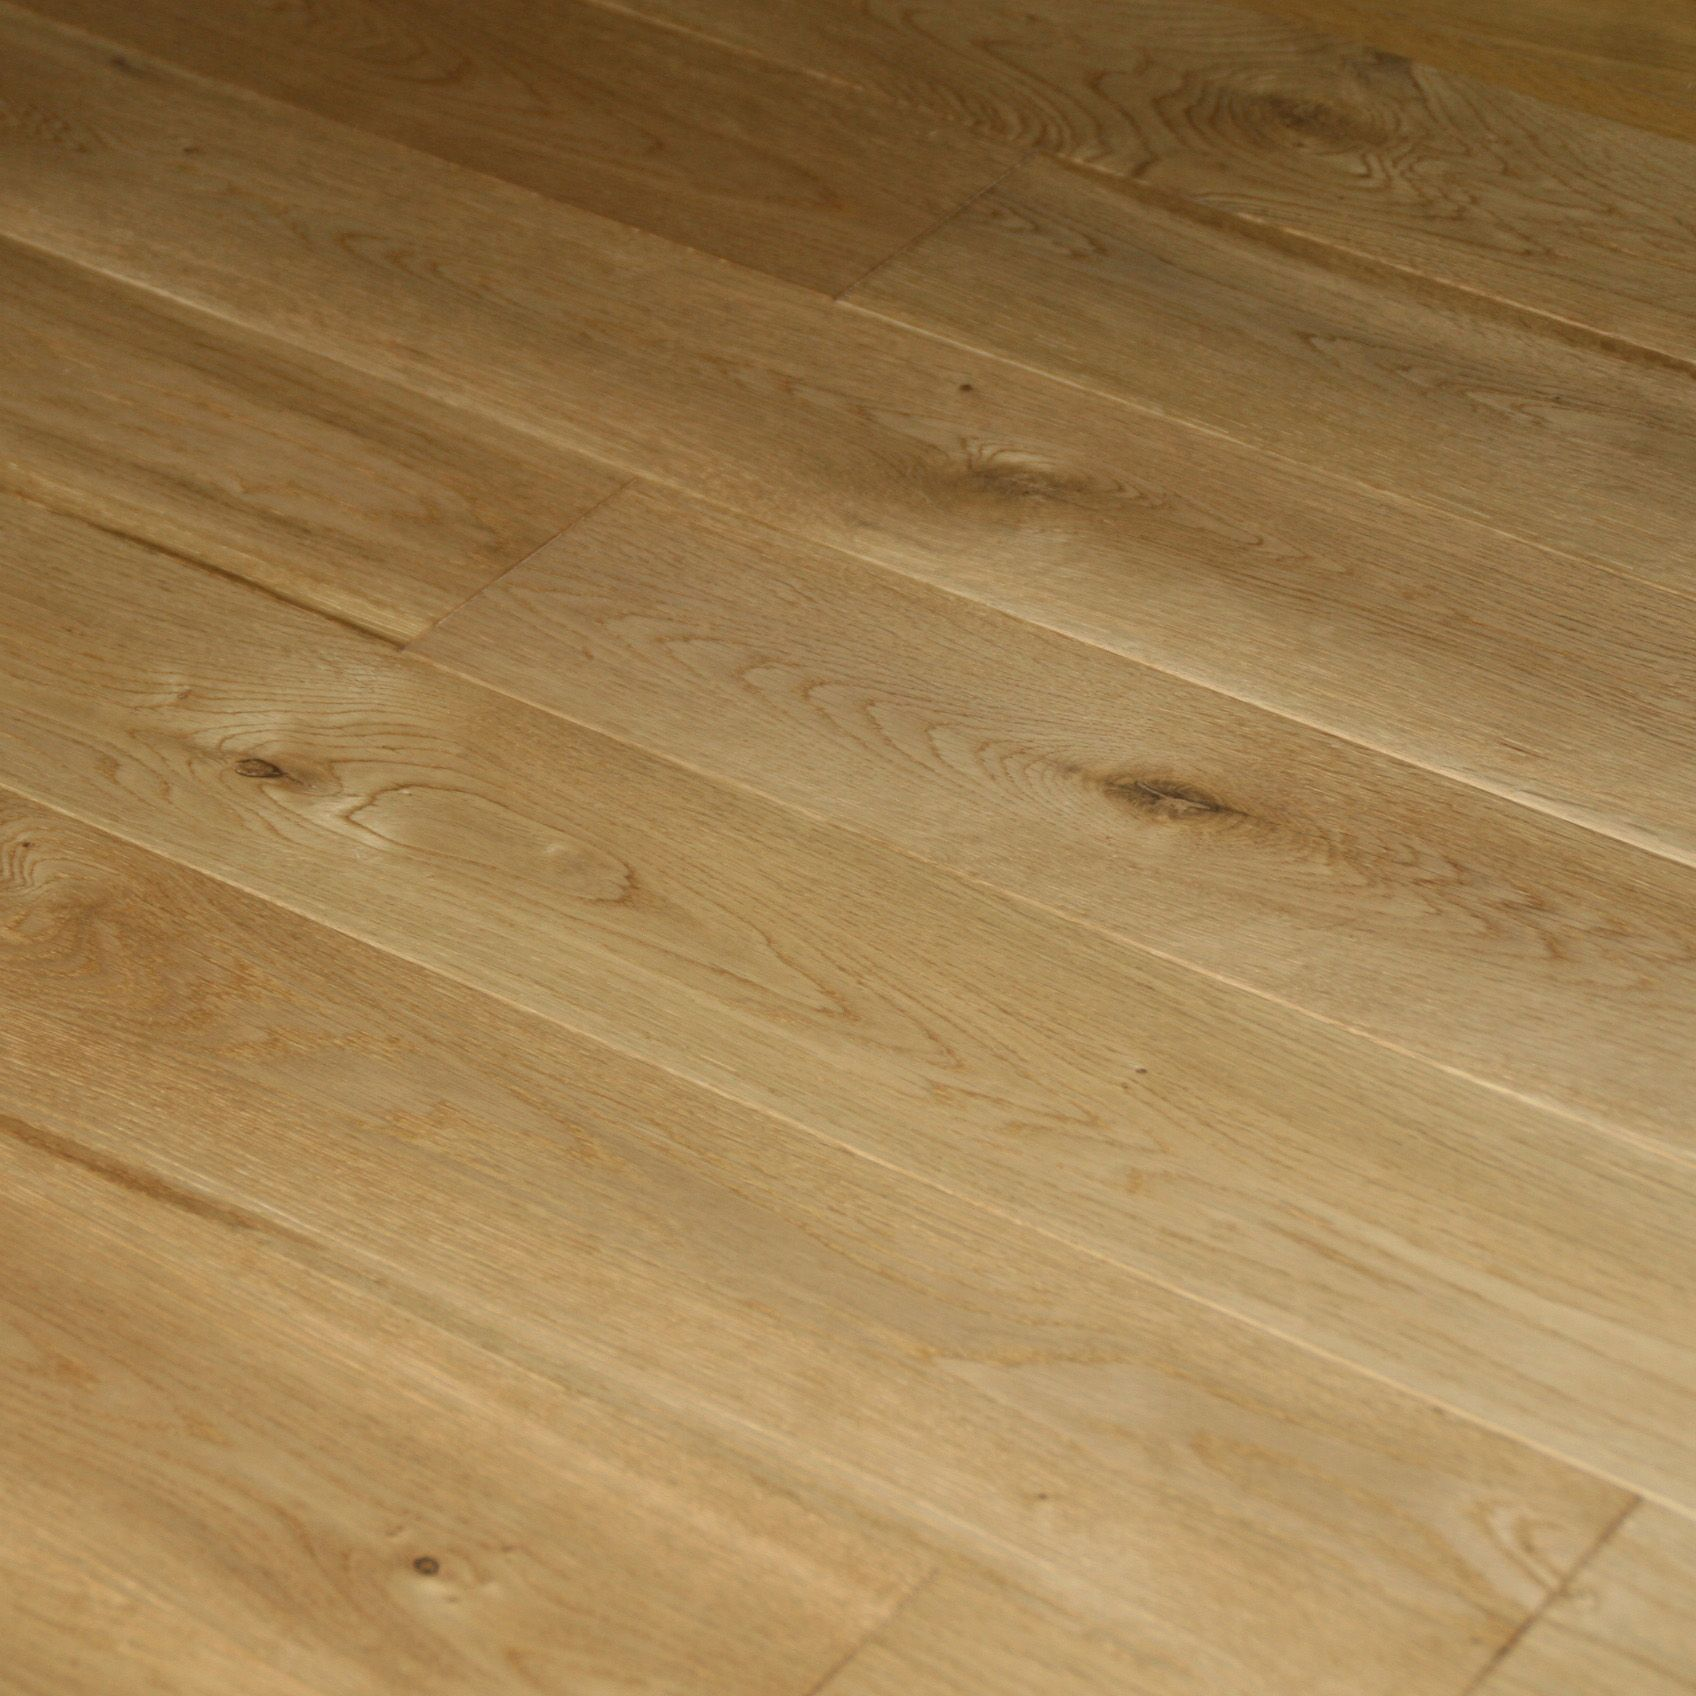 Rondo Solid Wood Flooring 108m² Departments Diy At Bq